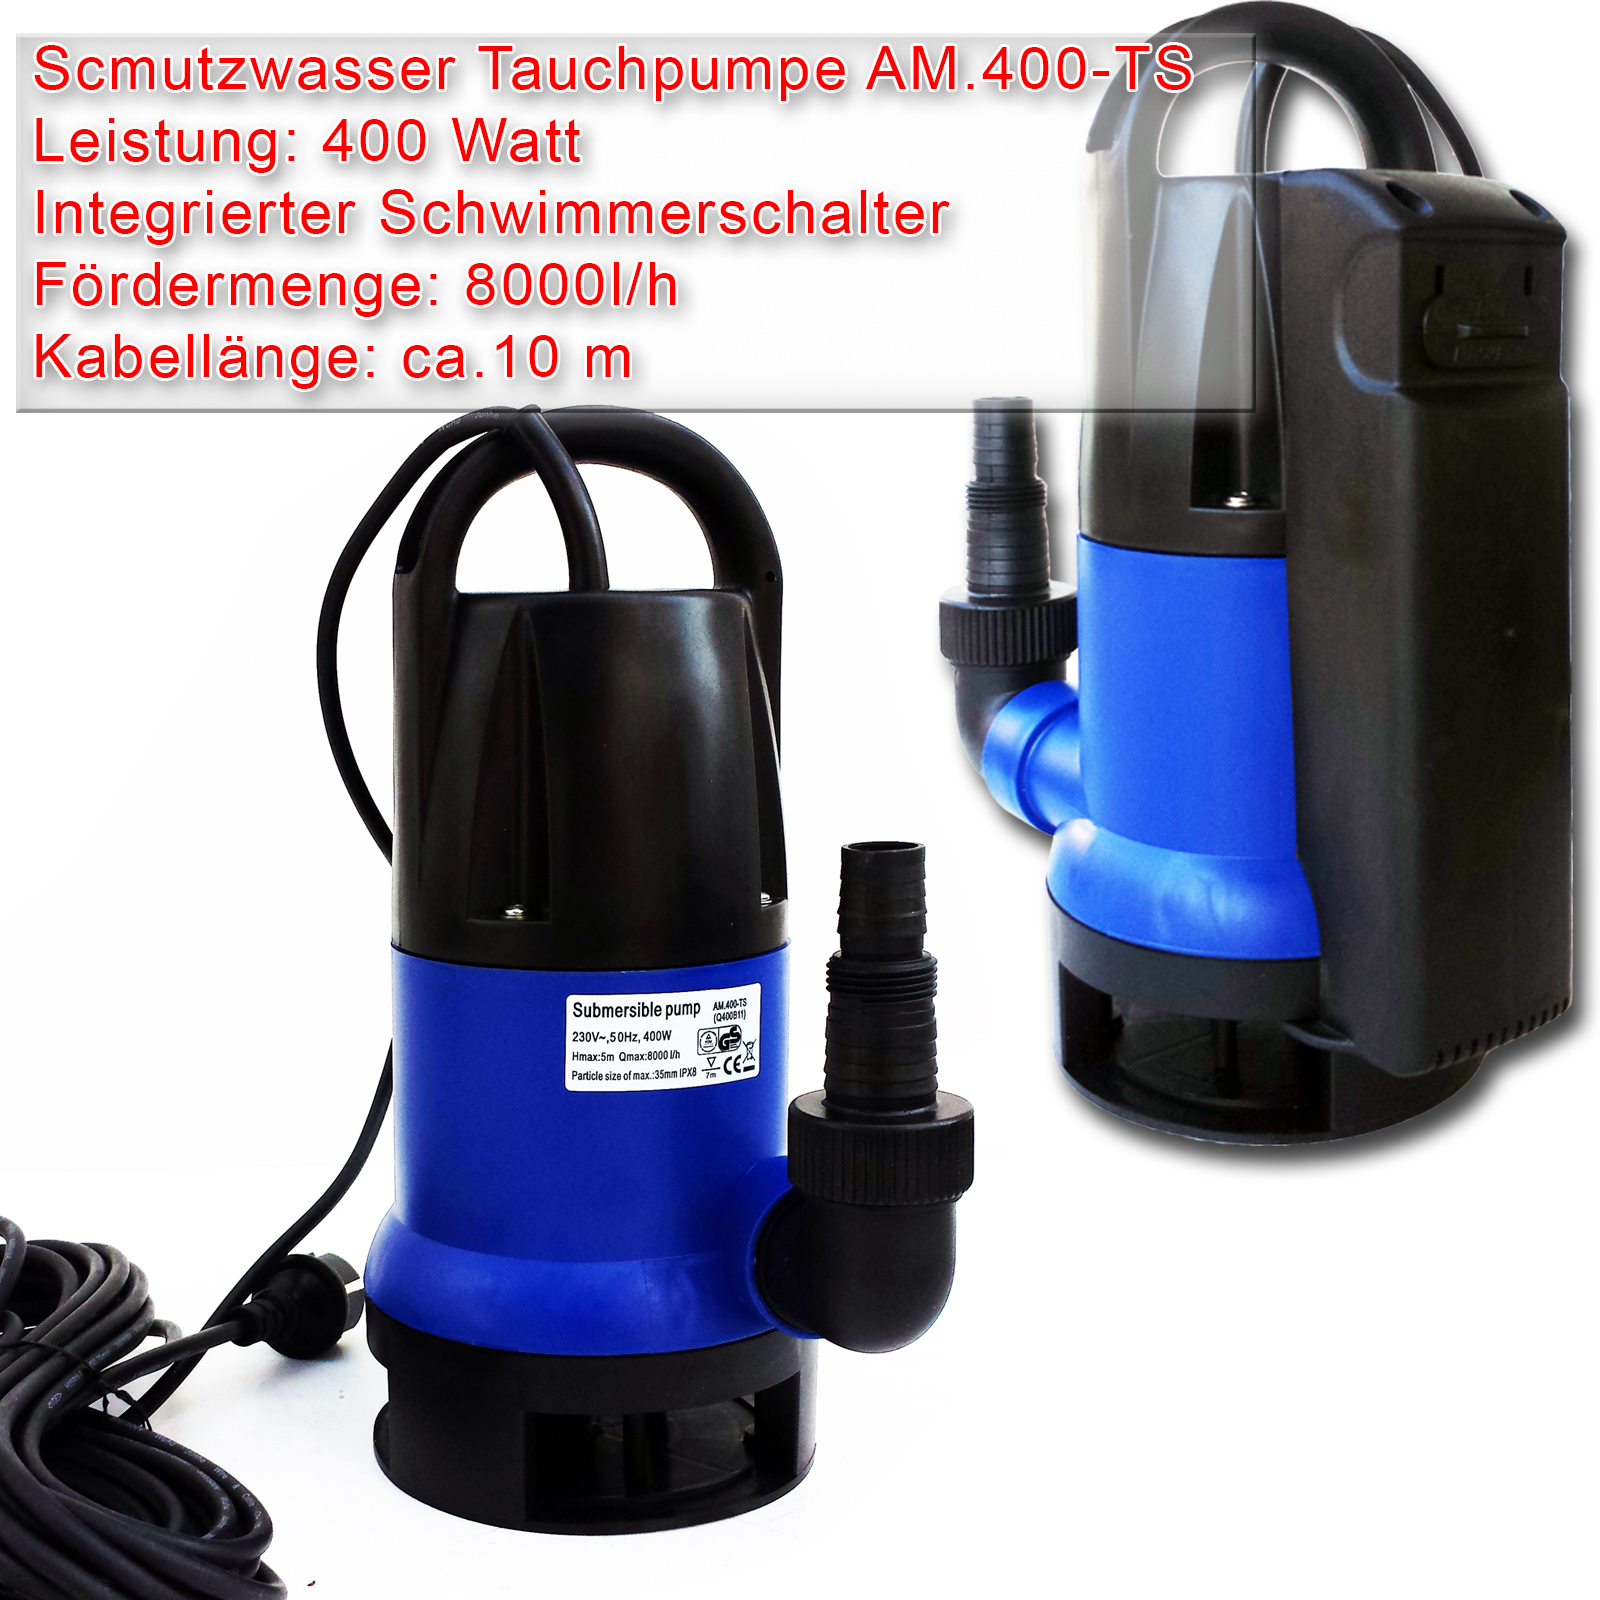 tauchpumpen 250w 400w gartenpumpe klarwasserpumpe schmutzwasserpumpe brunnen ebay. Black Bedroom Furniture Sets. Home Design Ideas